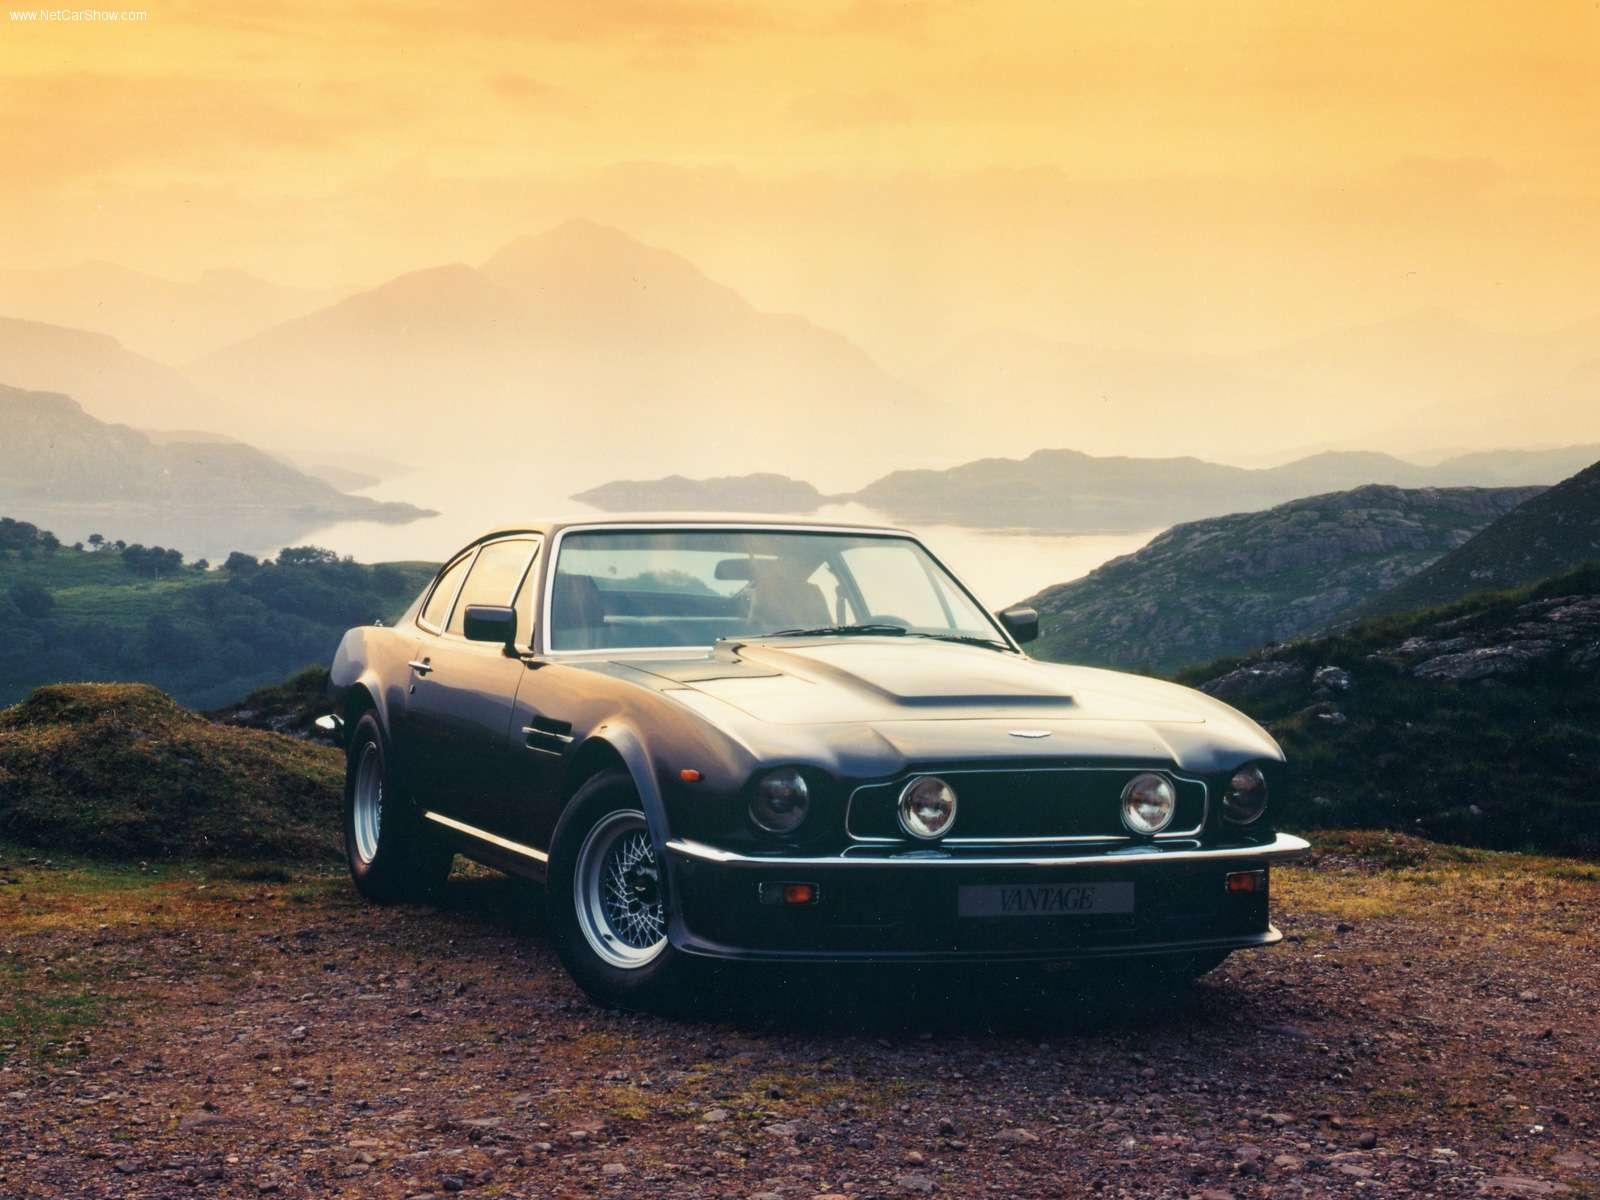 Aston_Martin-V8_Vantage_1977_1600x1200_wallpaper_01